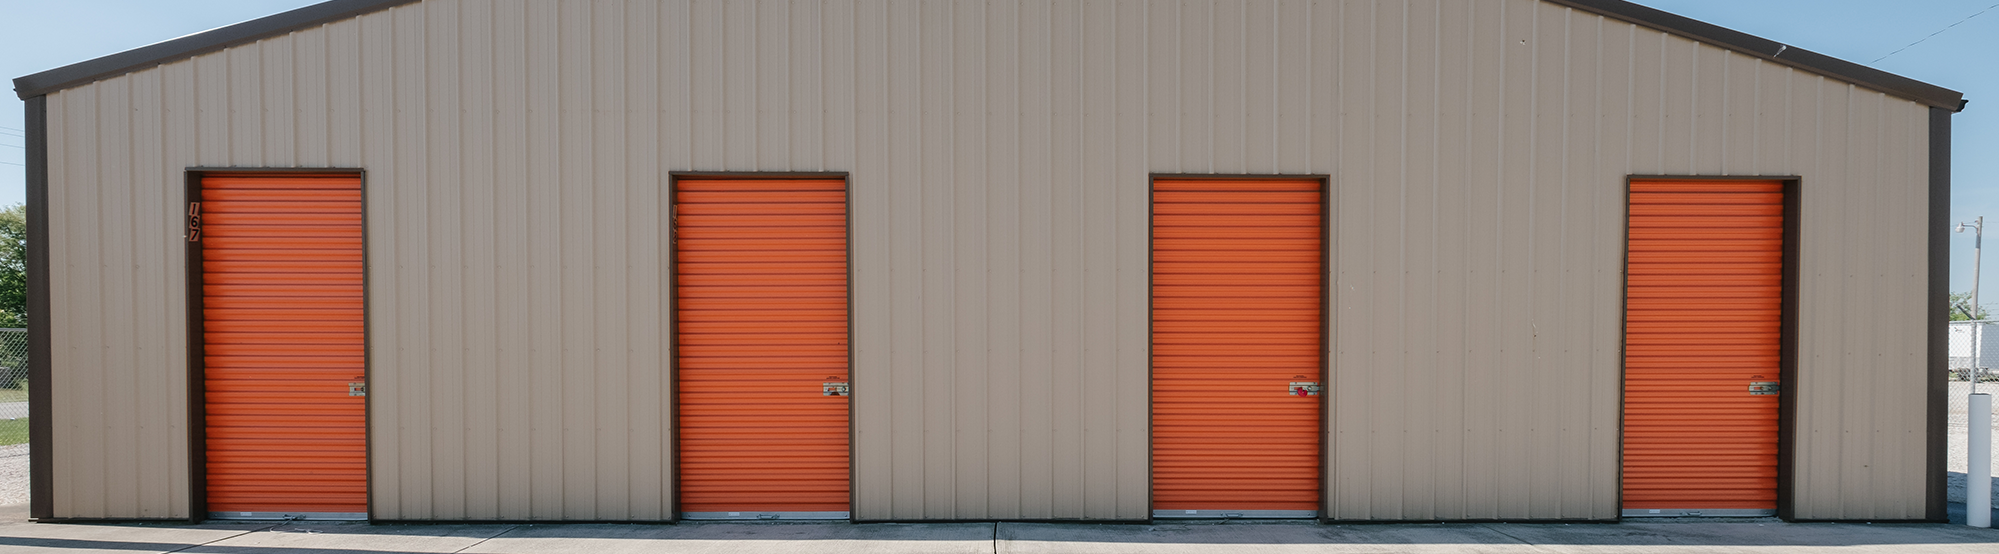 Outdoor Self Storage in DeMotte Indiana